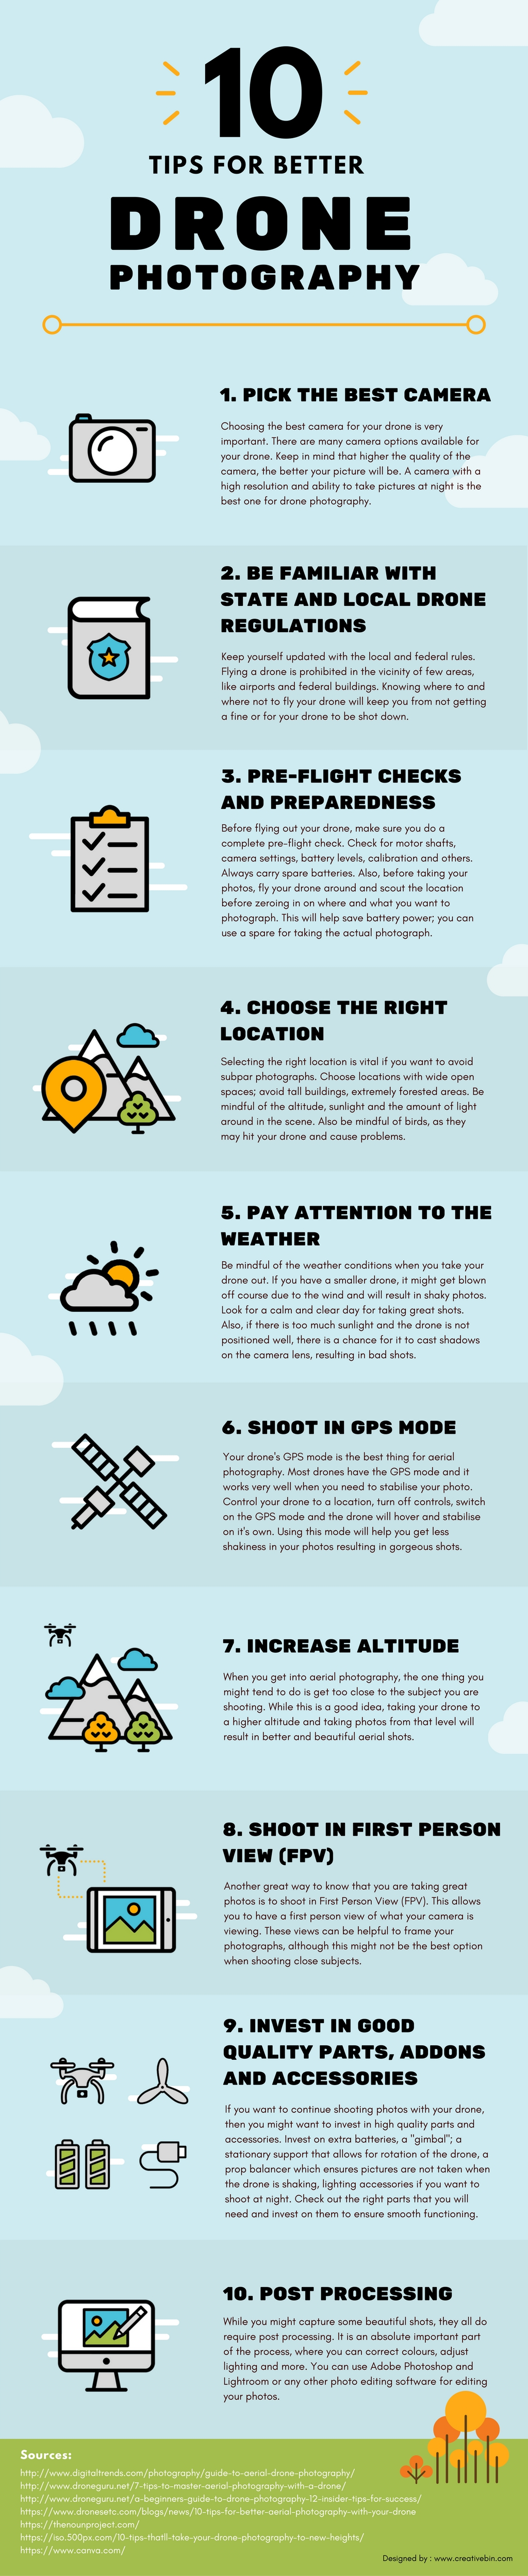 How to Get the Best Drone Photographs: 10 Valuable Tips - Infographic